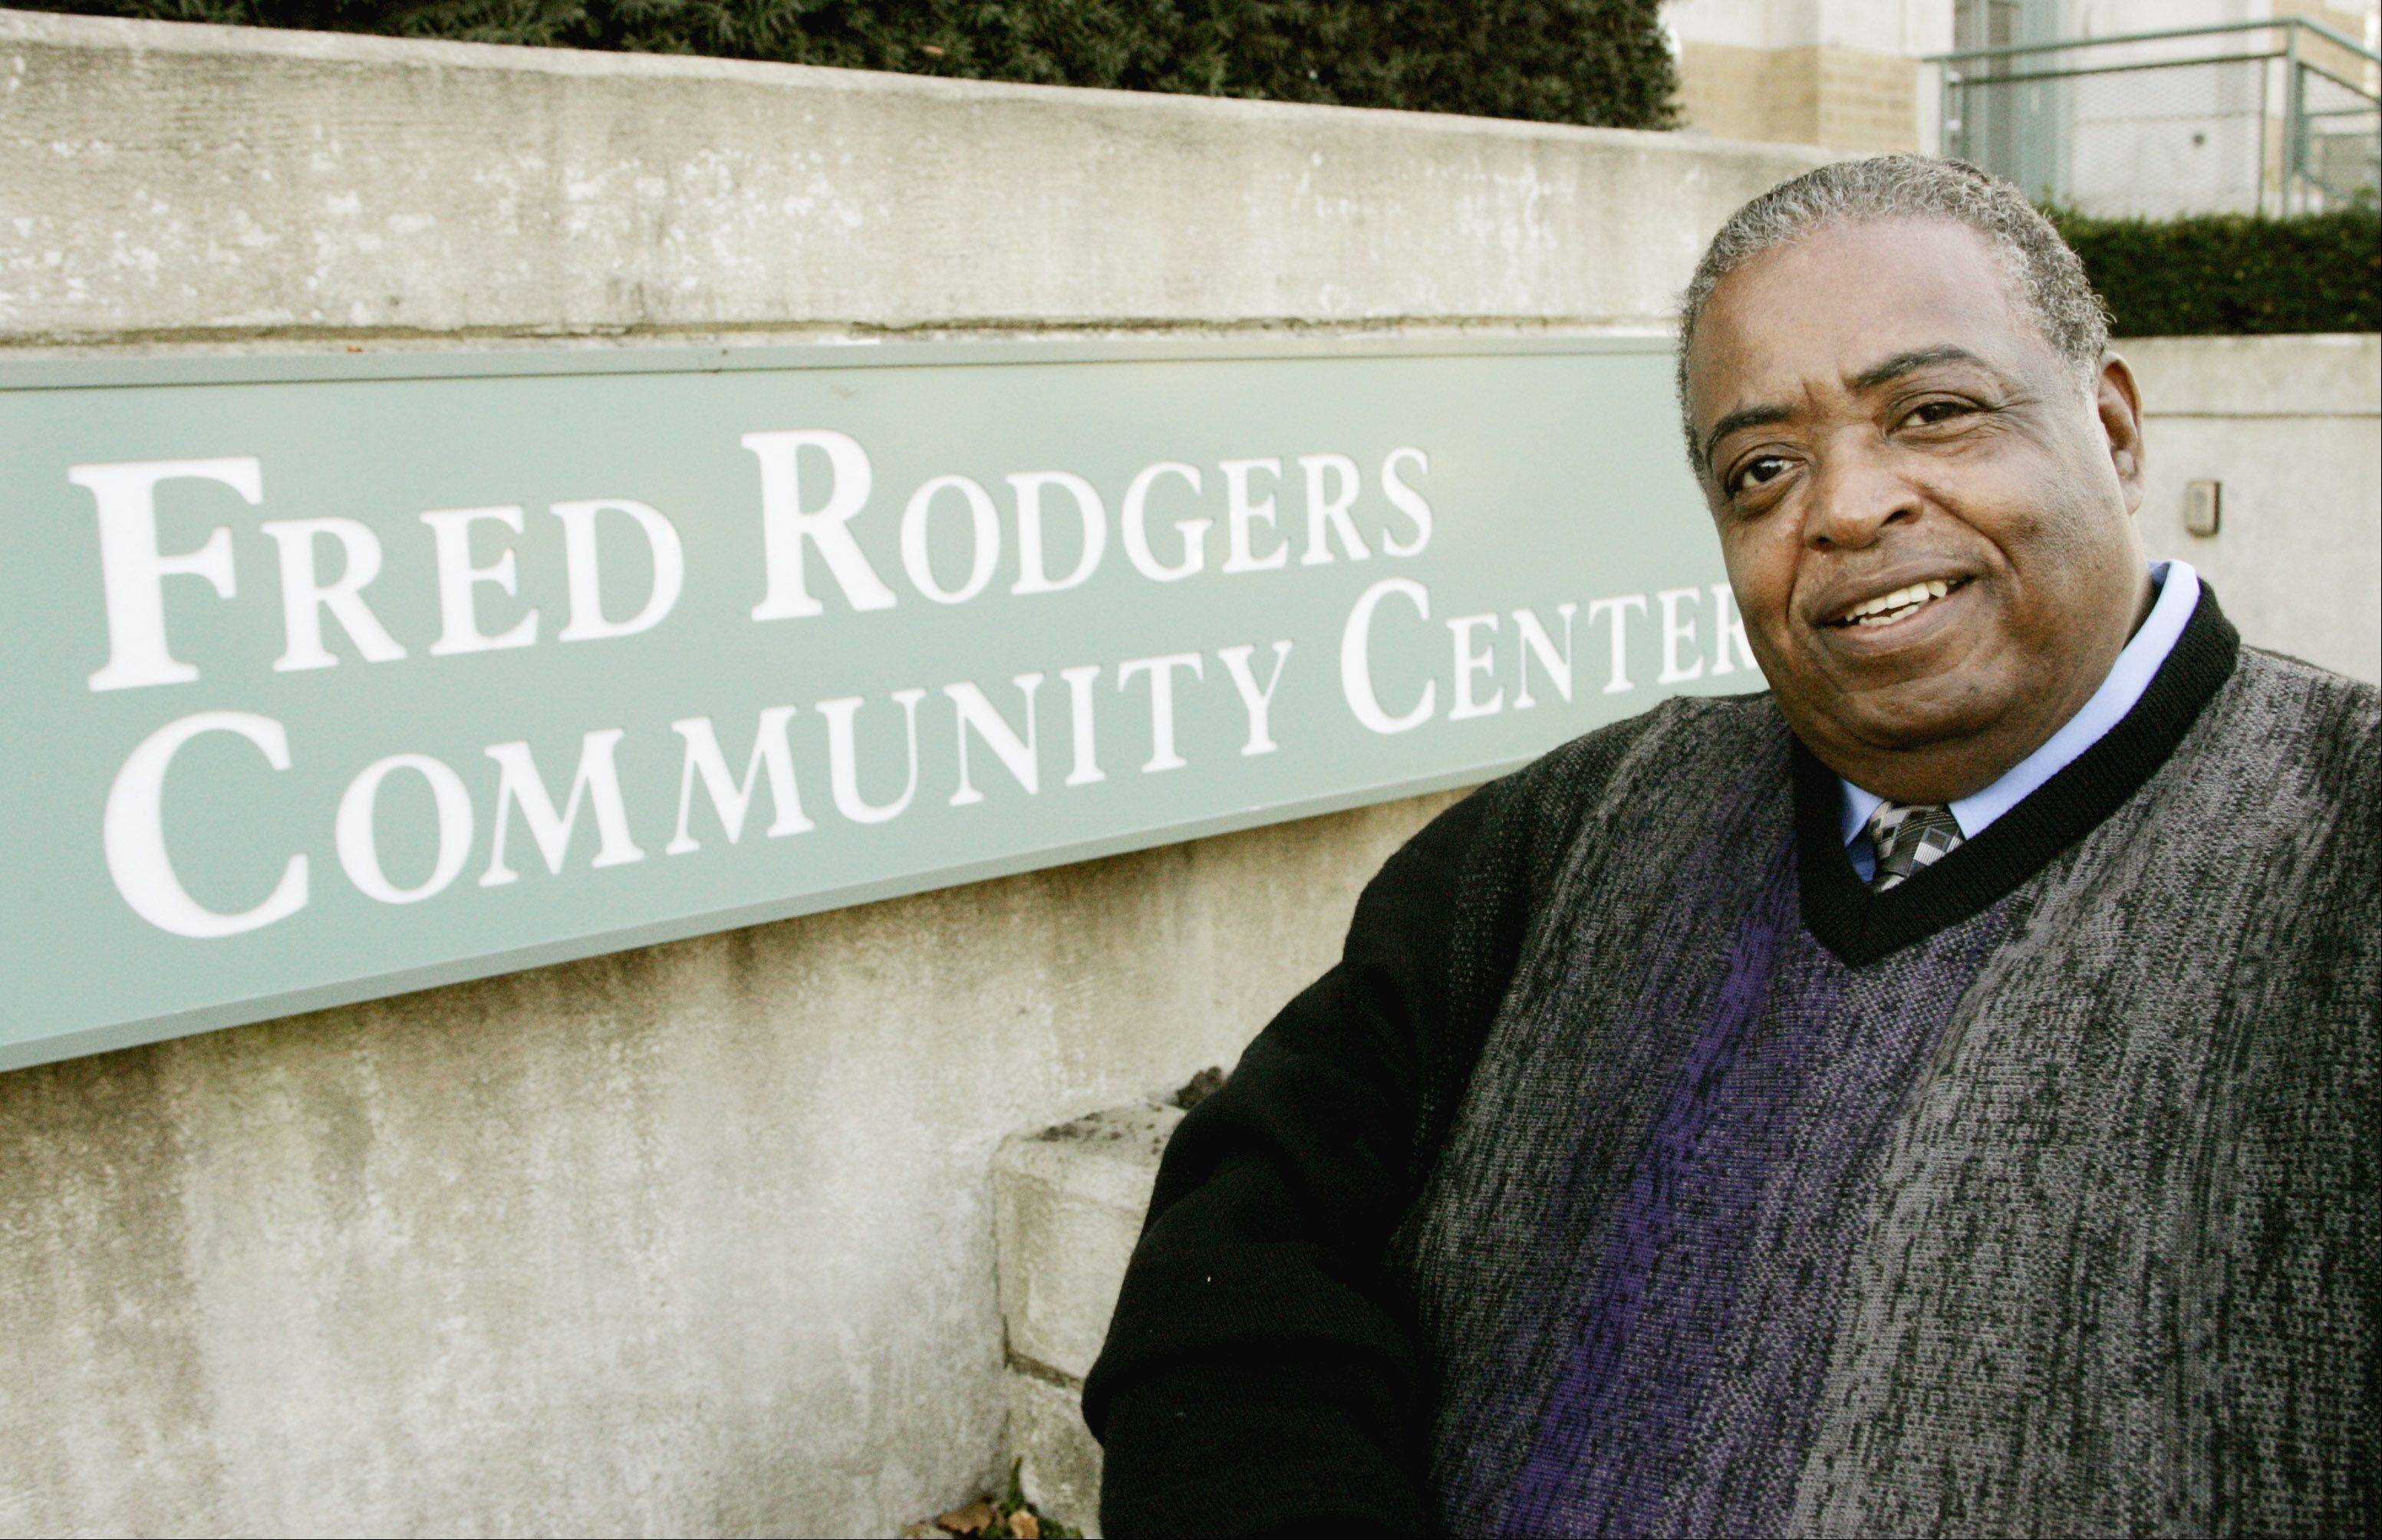 Former Aurora youth activities director Fred Rodgers, seen here in 2009, is the namesake for the Fred Rodgers Community Center, soon to be sold to East Aurora District 131 for $3 million.